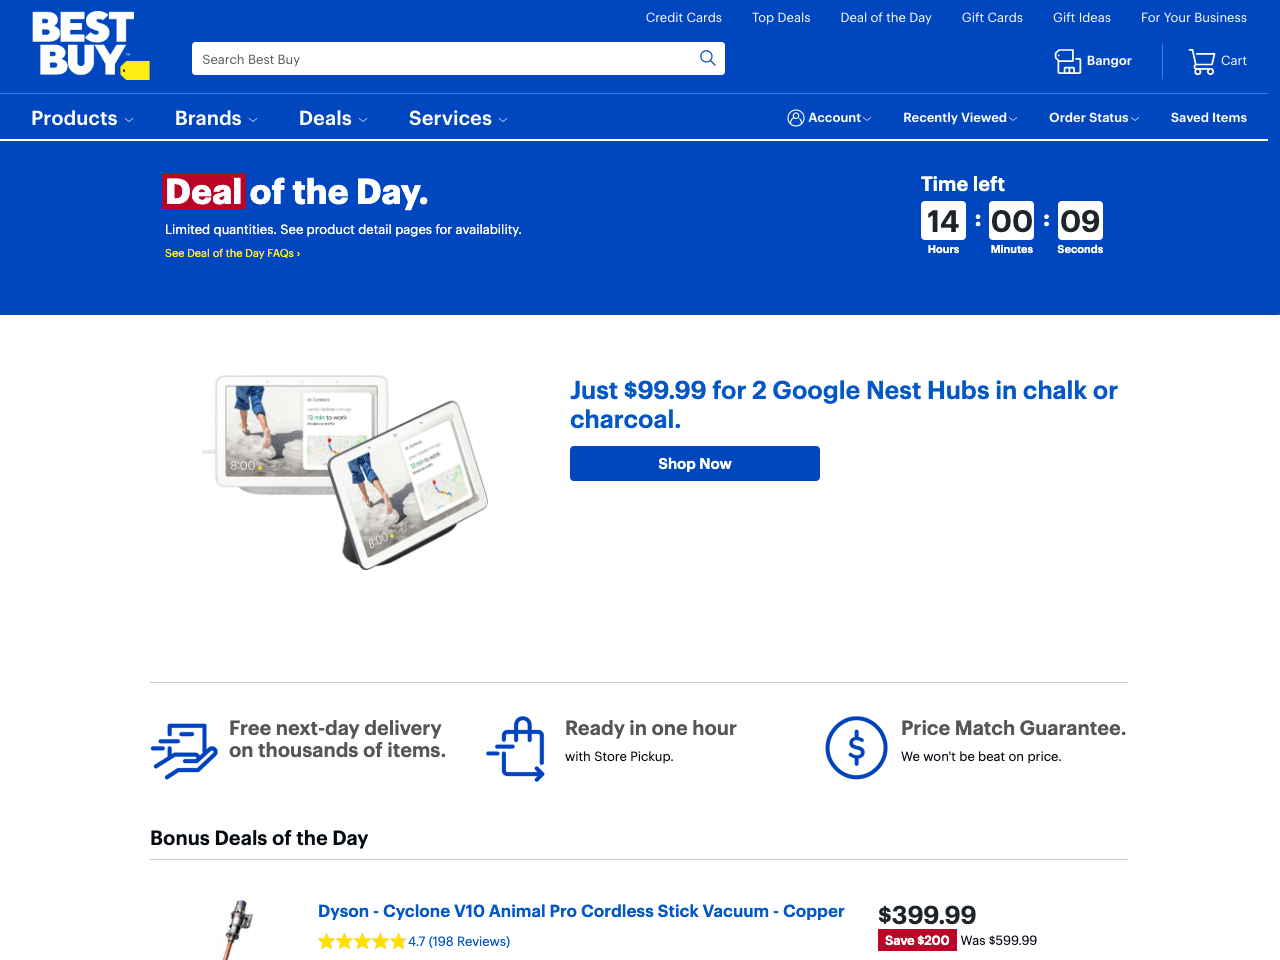 Blue Apron catches a leaving visitor's attention with a modal limited time offer popup that has a countdown timer